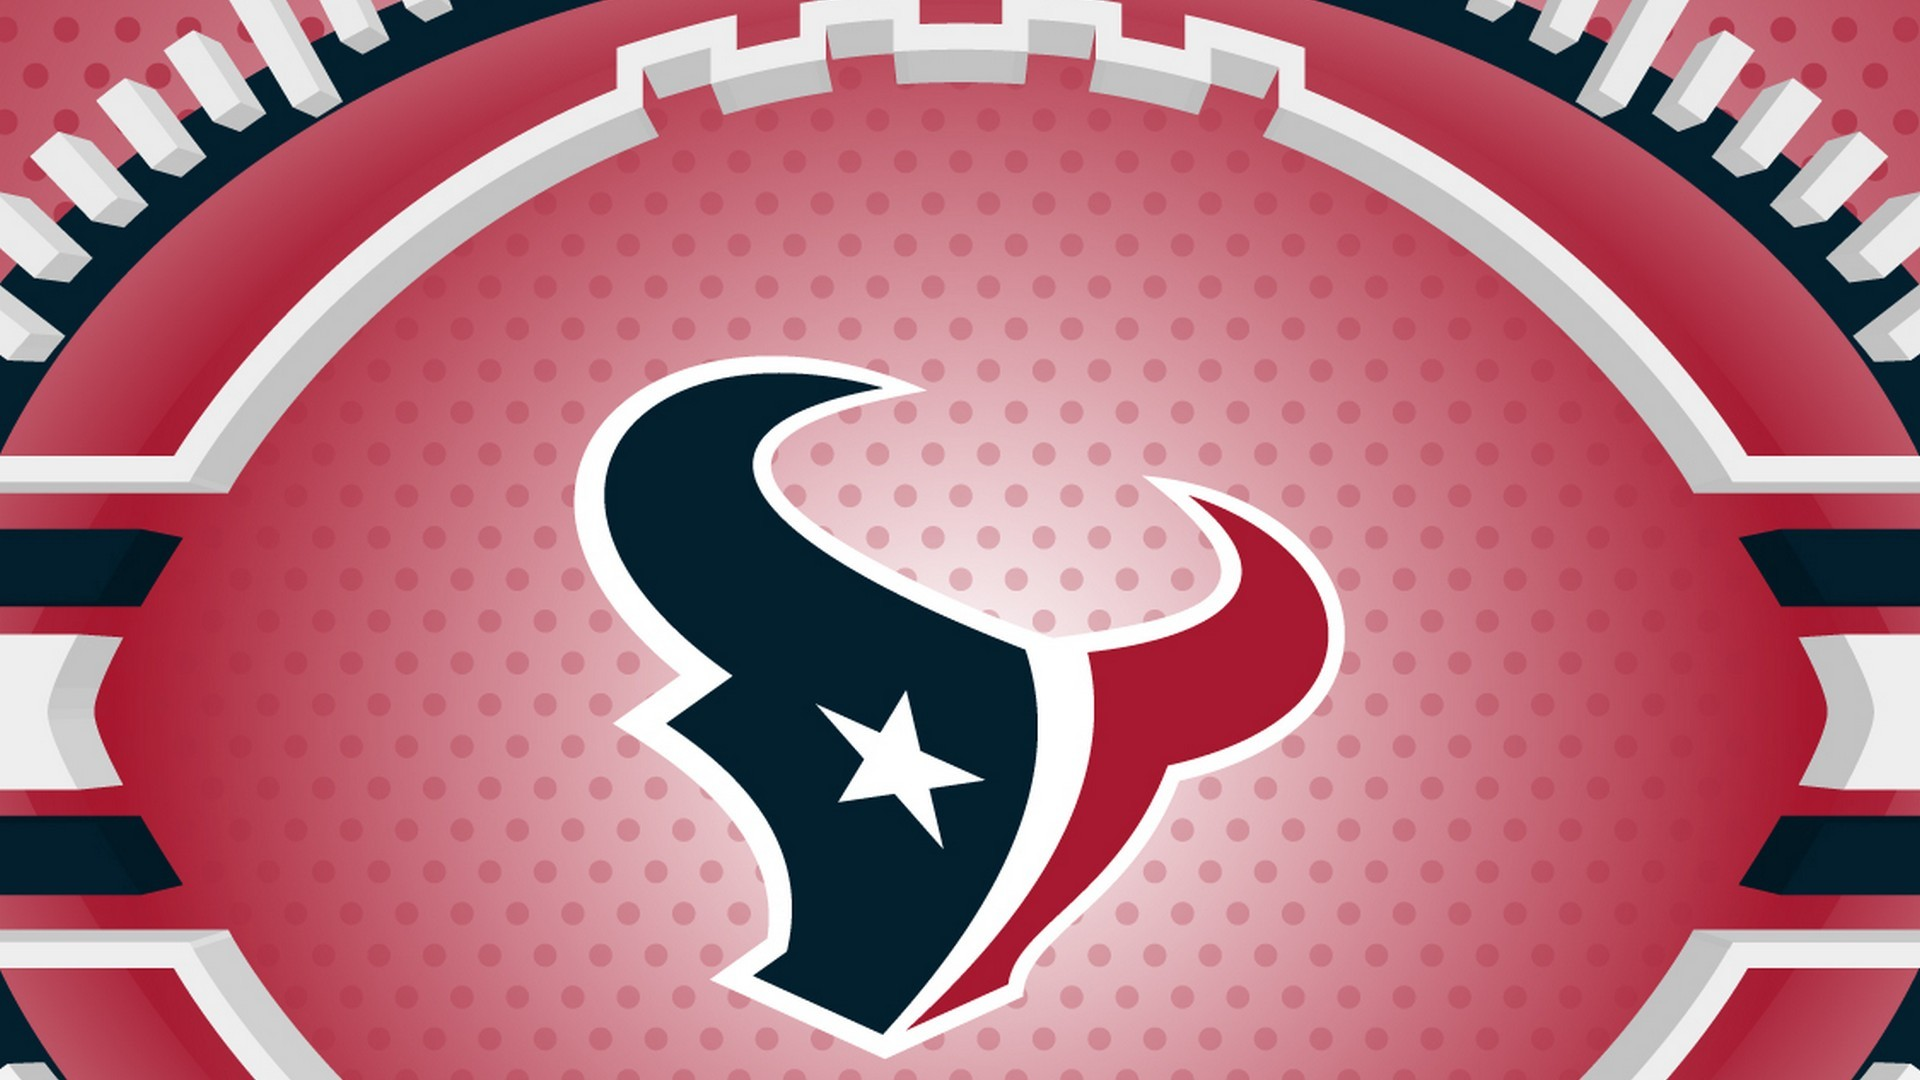 1920x1080 Wallpapers HD Houston Texans NFL with resolution  pixel. You can  make this wallpaper for